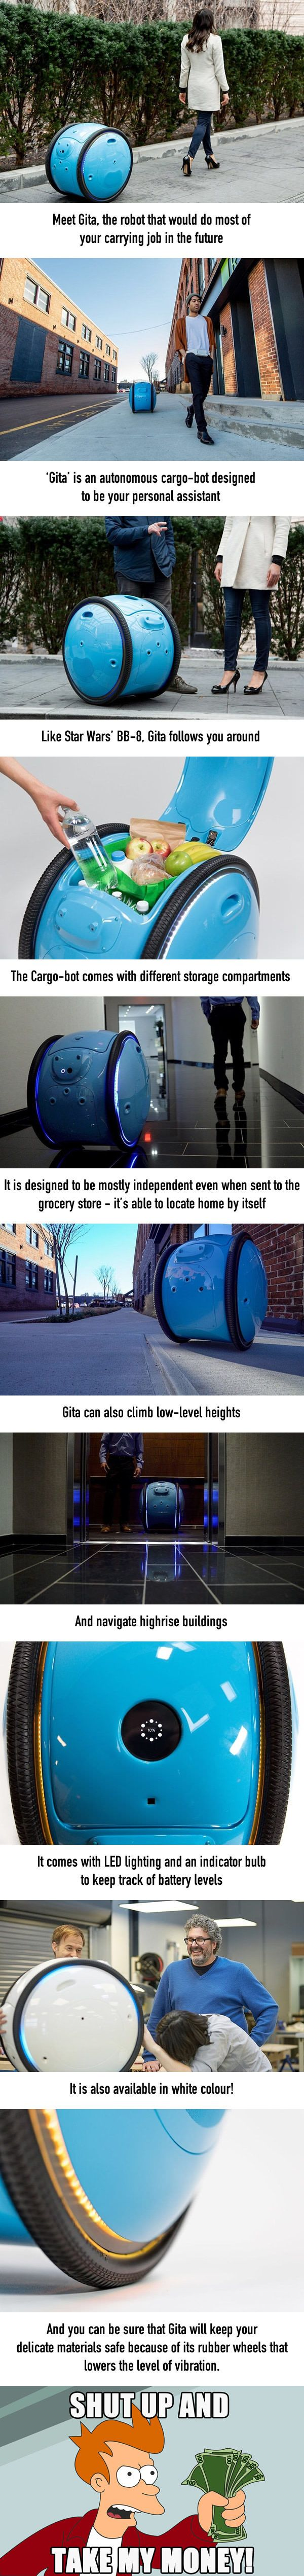 Gita Is an Autonomous Cargo Robot That Will Follow You Around - 9GAG